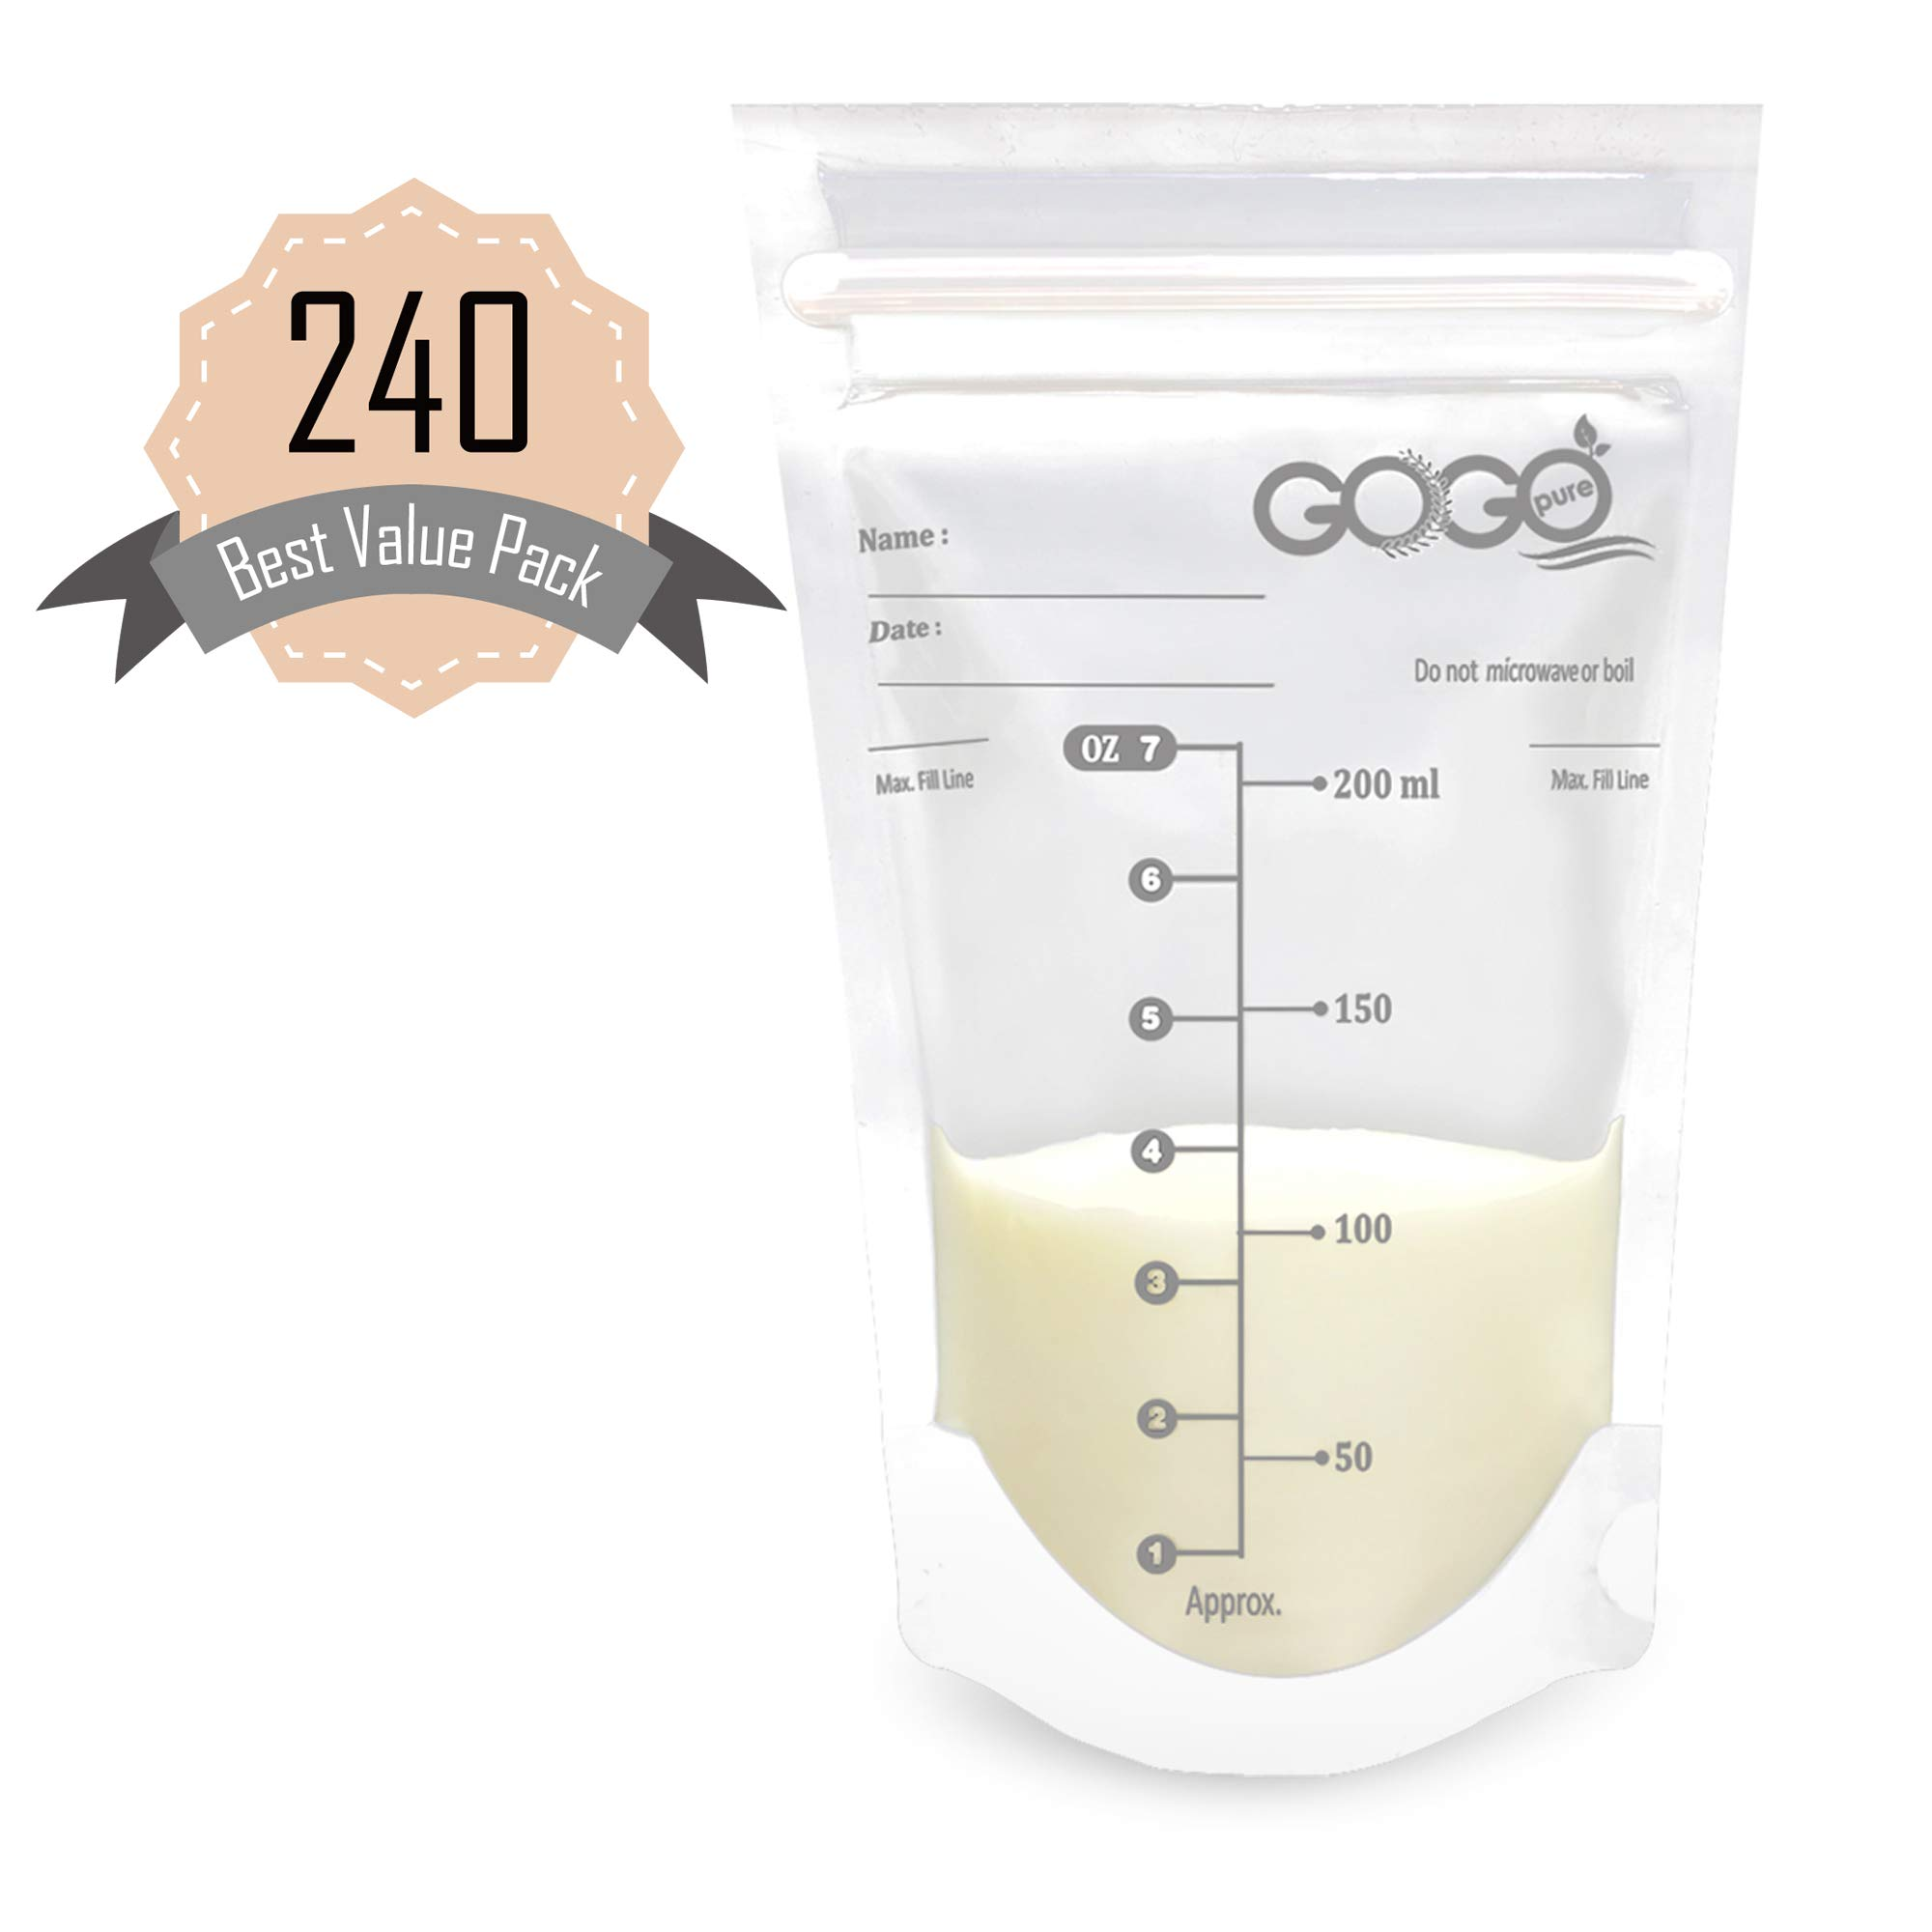 240 Count Best Value Pack Breast Milk Storage Bags - 7 Ounce, Pre-Sterilized, BPA Free, Leak Proof Double Zipper Seal, Self Standing, for Refrigeration and Freezing - Only Available at Amazon! by Go Go Pure